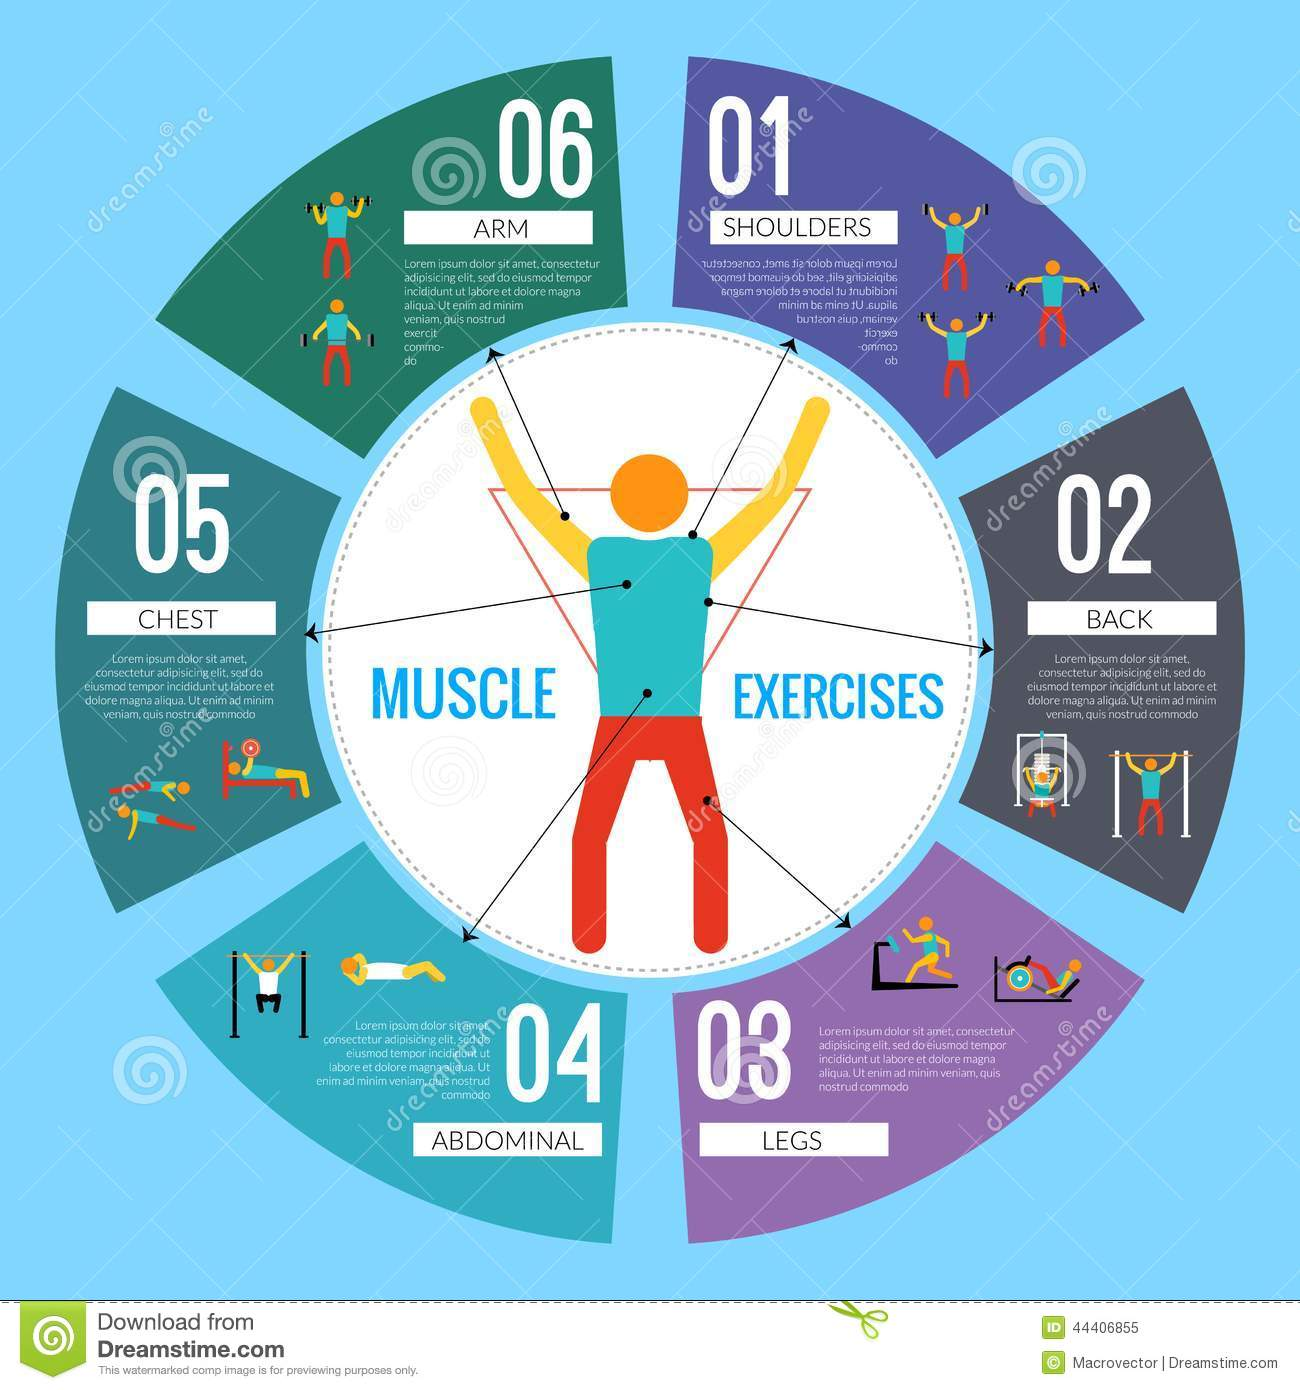 Exercise Infographic Stock Vector - Image: 57425921